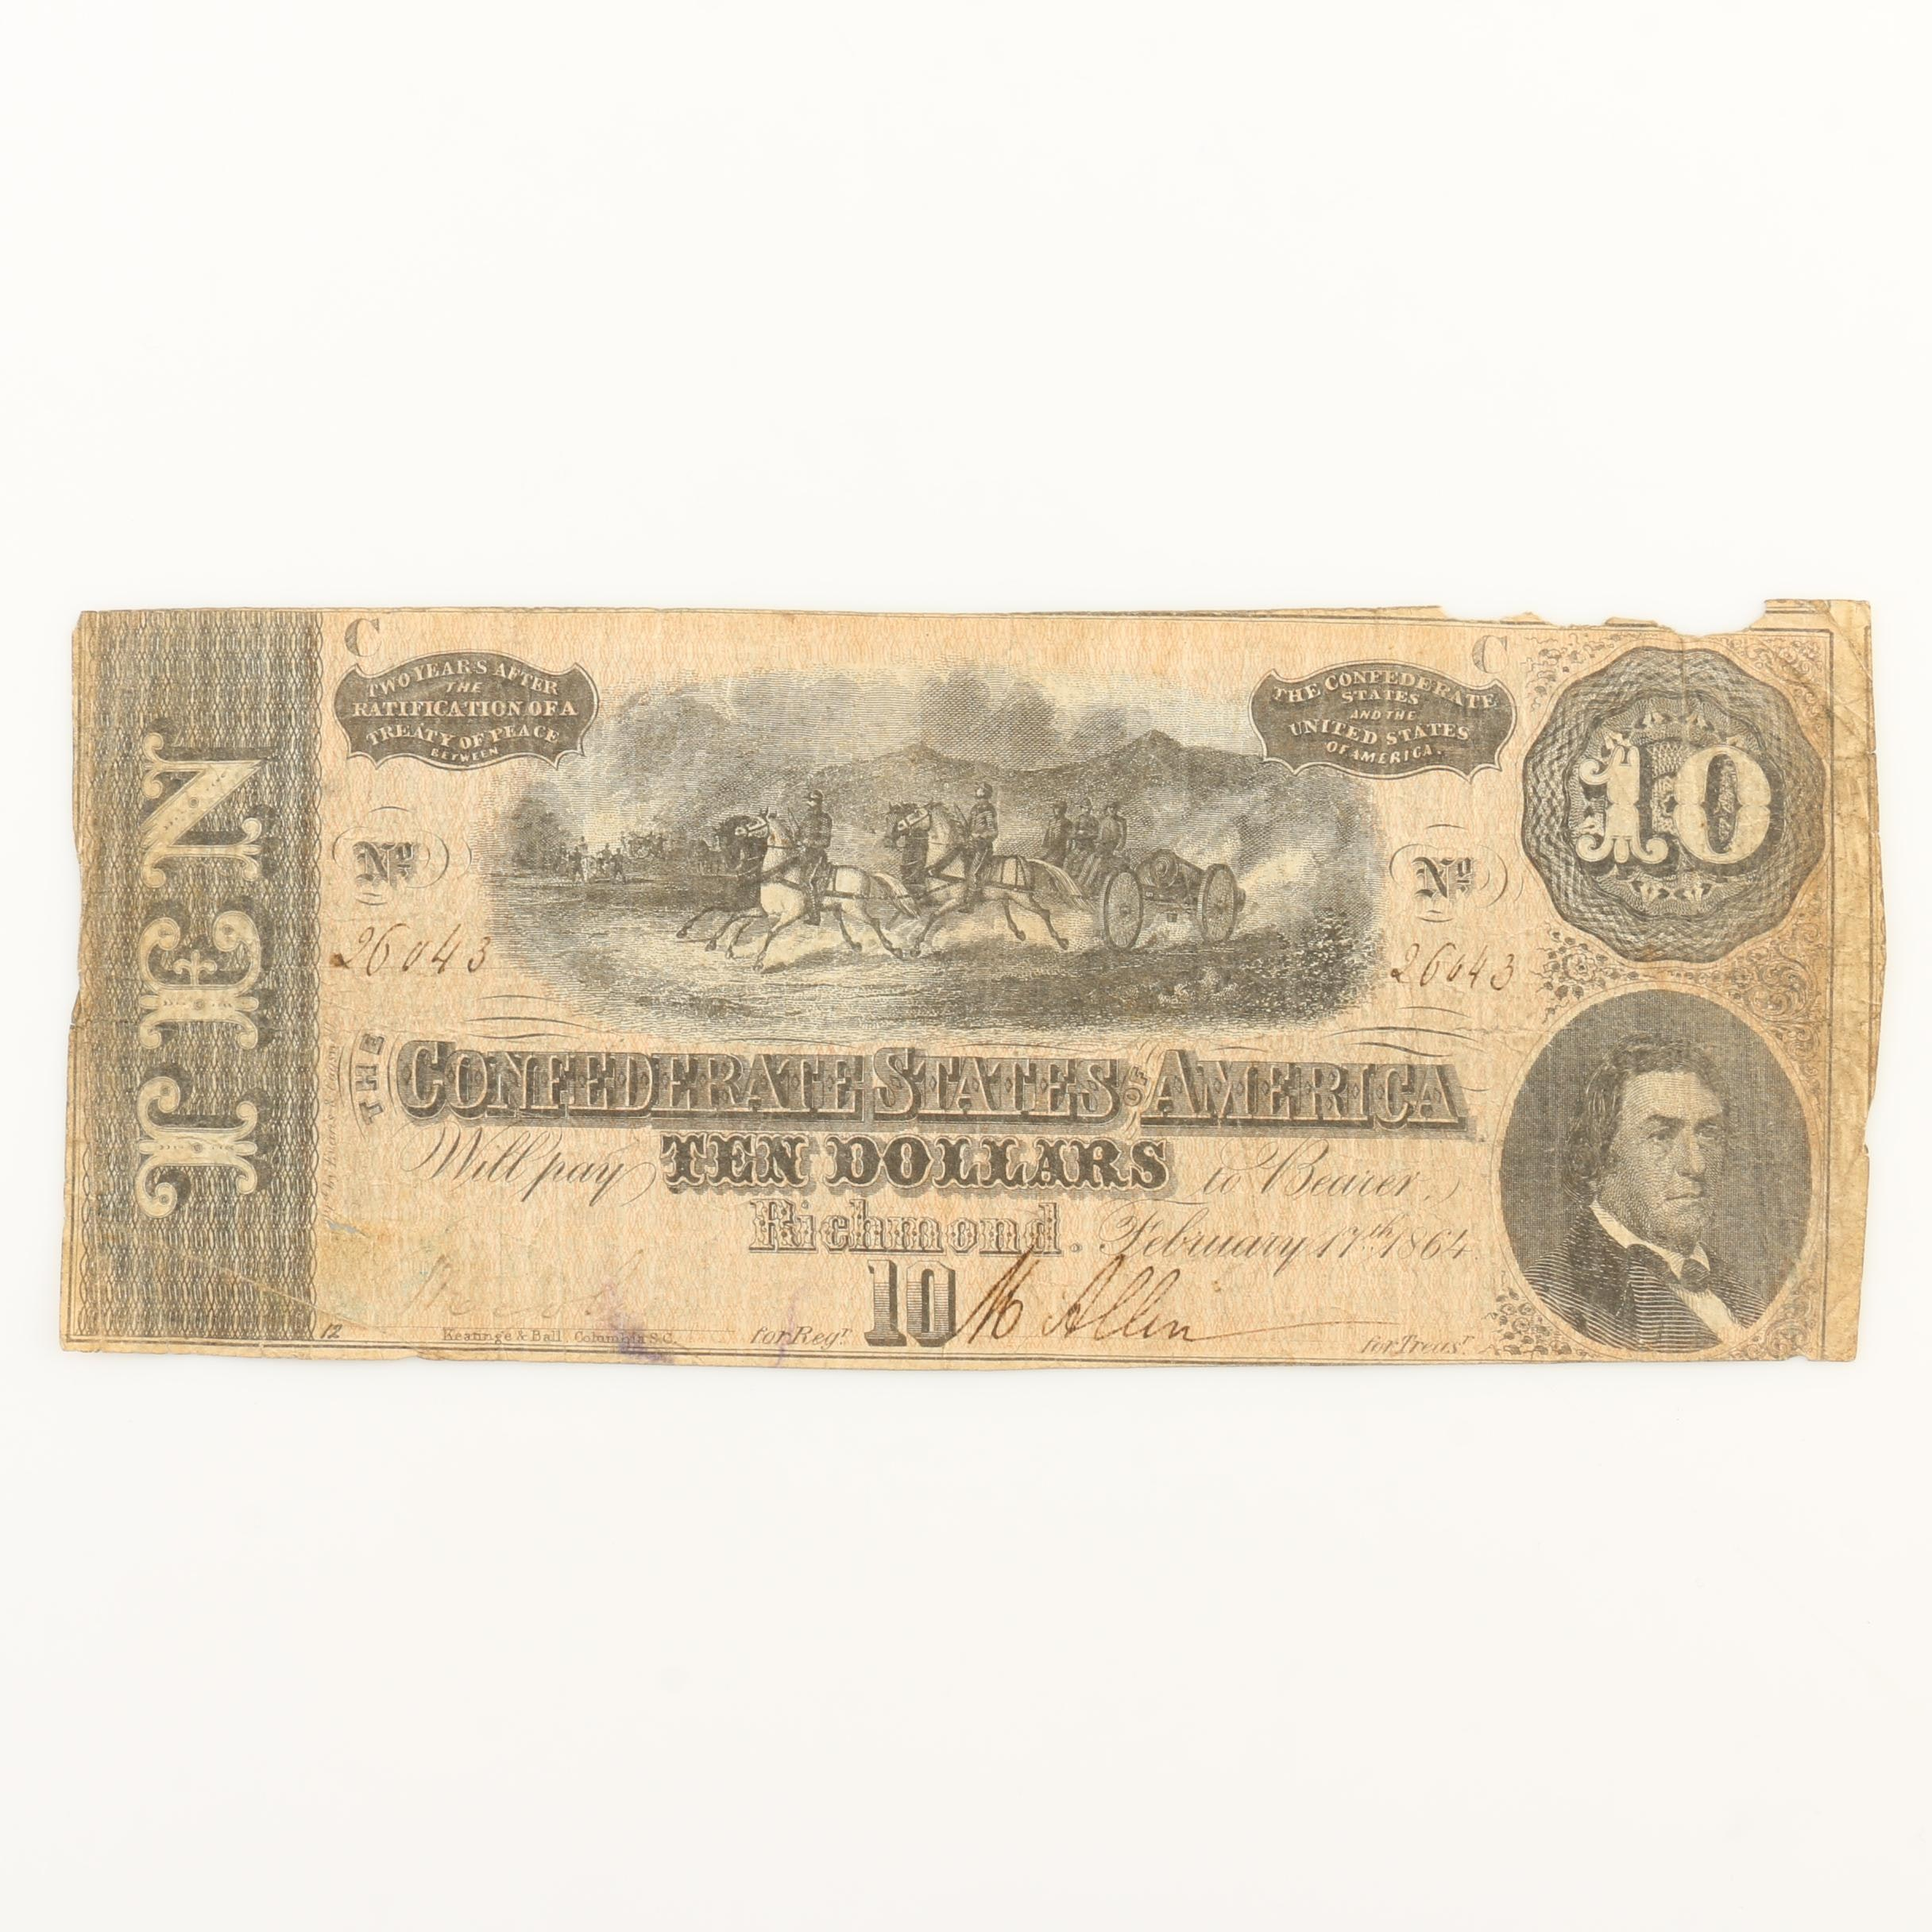 Ten Dollar Obsolete Currency Note from the Confederate States of America